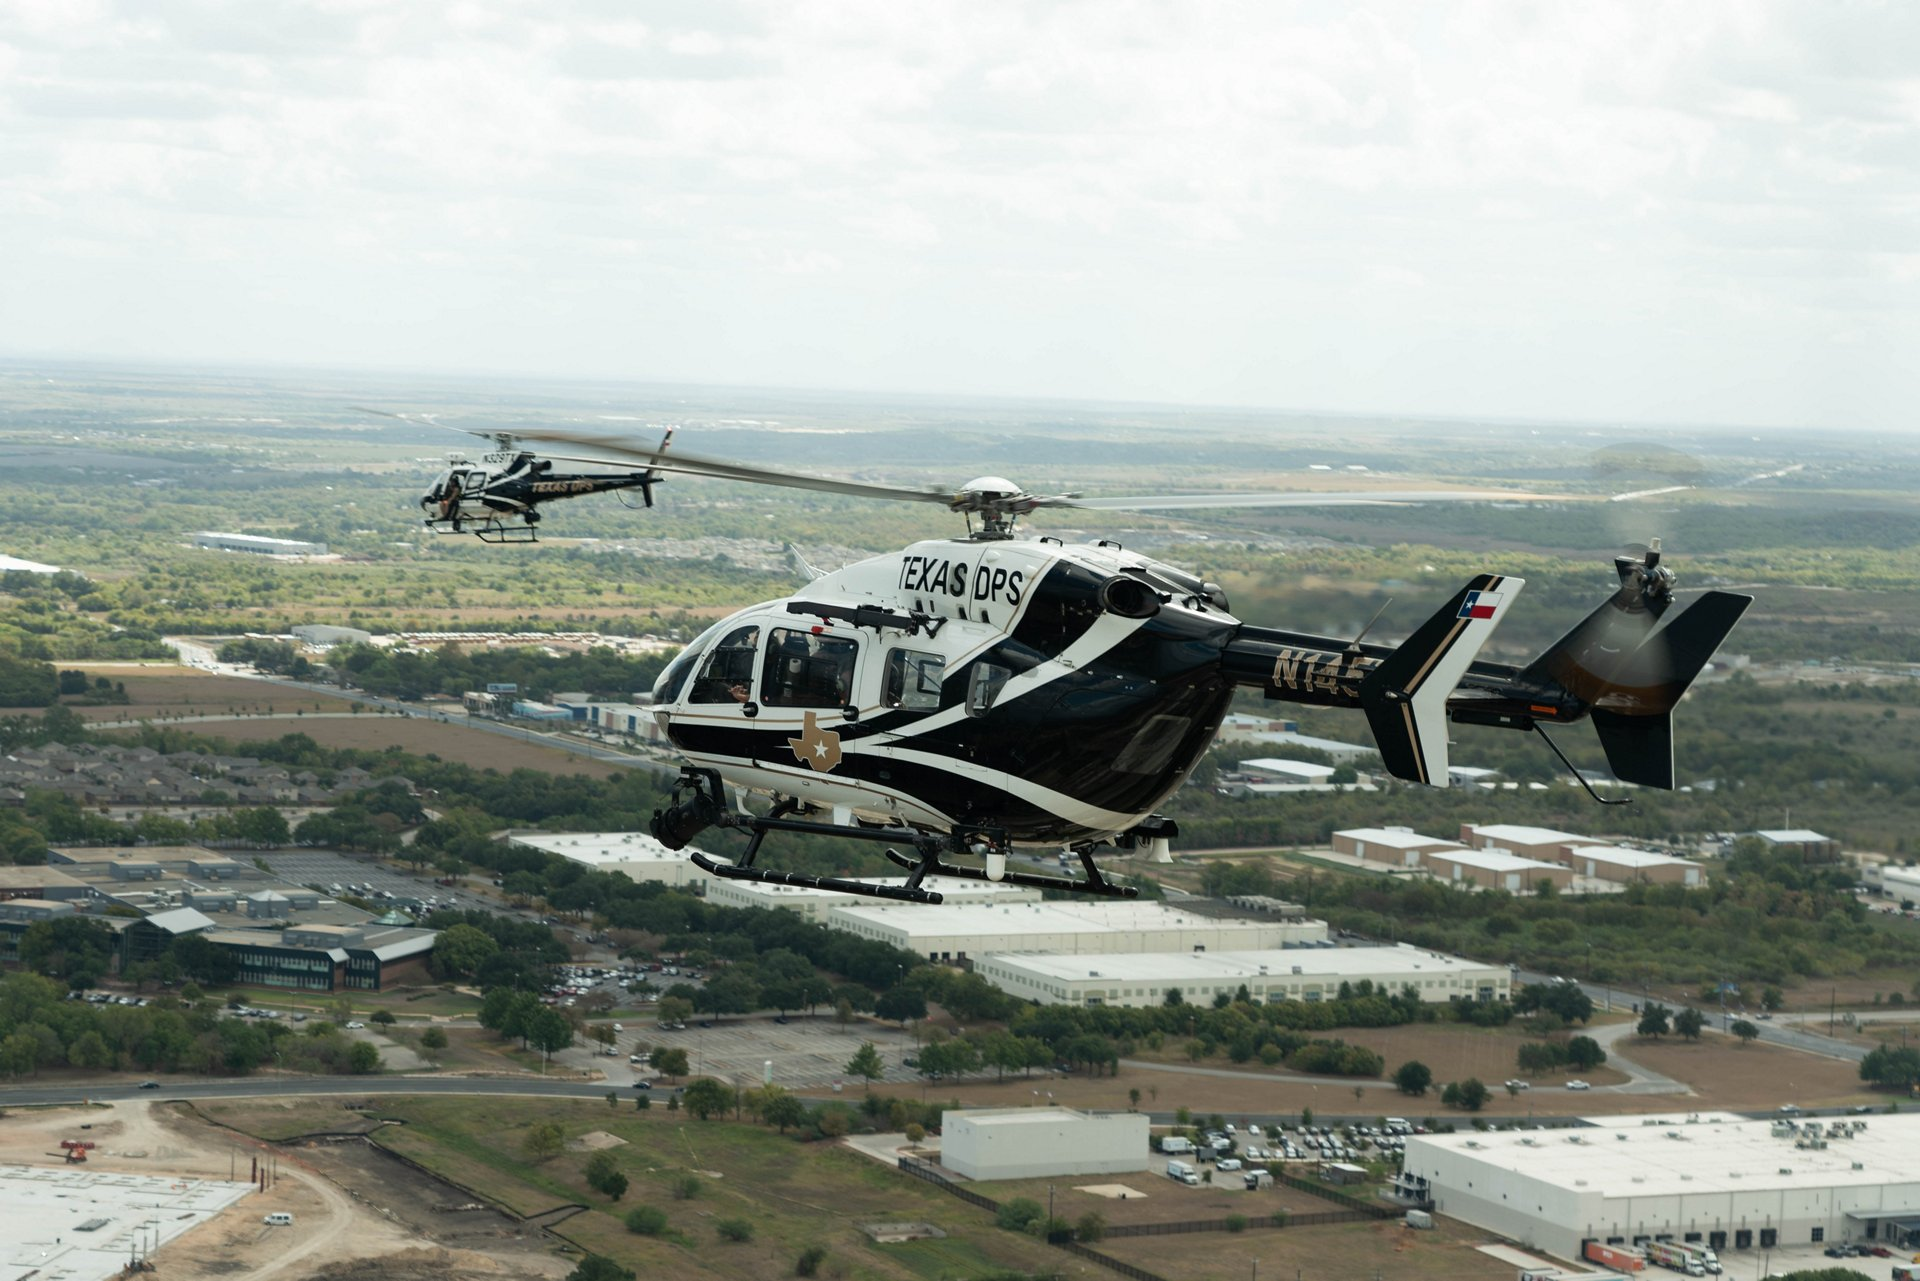 The H125 is a firm favourite of the Aircraft Operations Division of the Texas Department of Public Safety (DPS), which has 14 of these helicopters to protect civilians from the air.